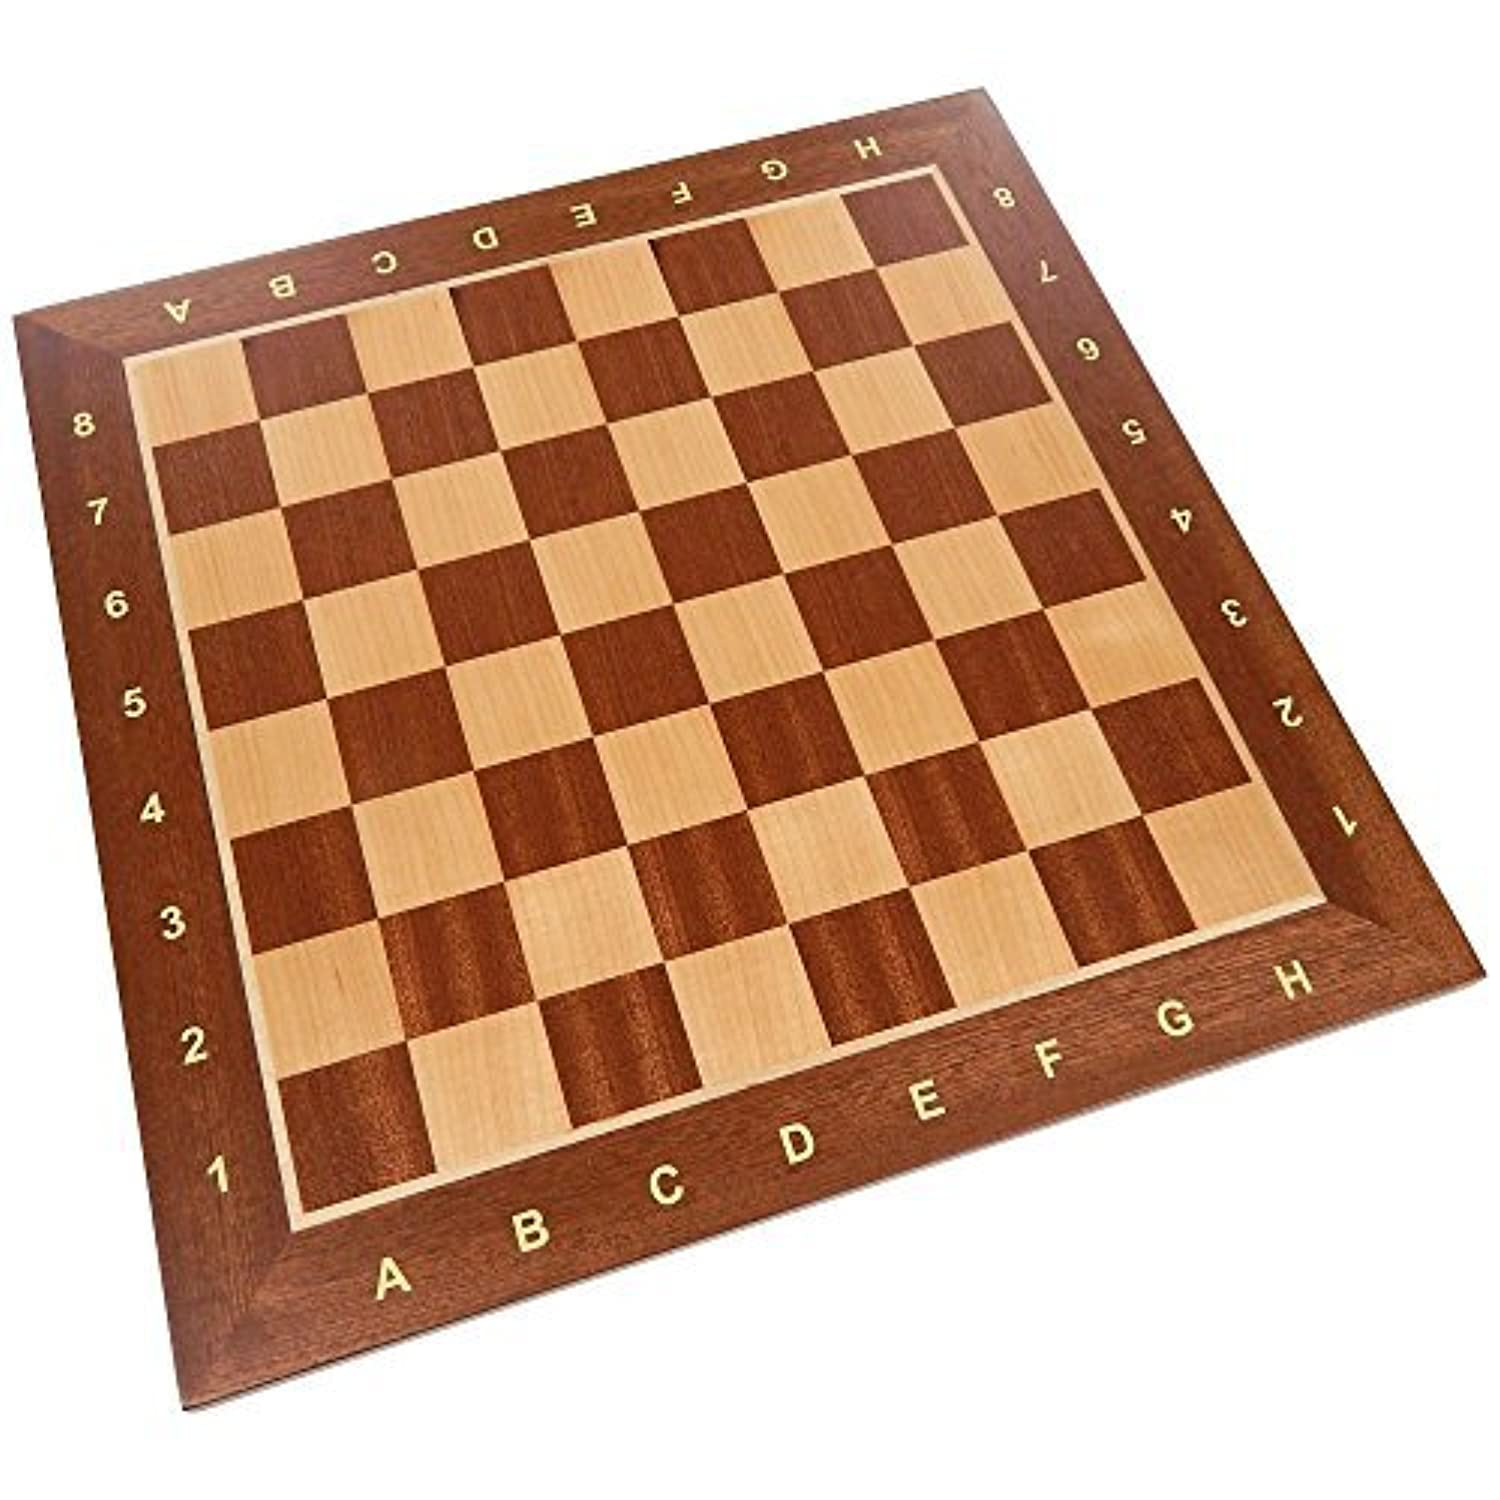 Requa Chess Board with Inlaid Wood and Ranks and Files (Numbers and Letters on Side) - Board Only - 15 Inch by Best Chess Set [並行輸入品]